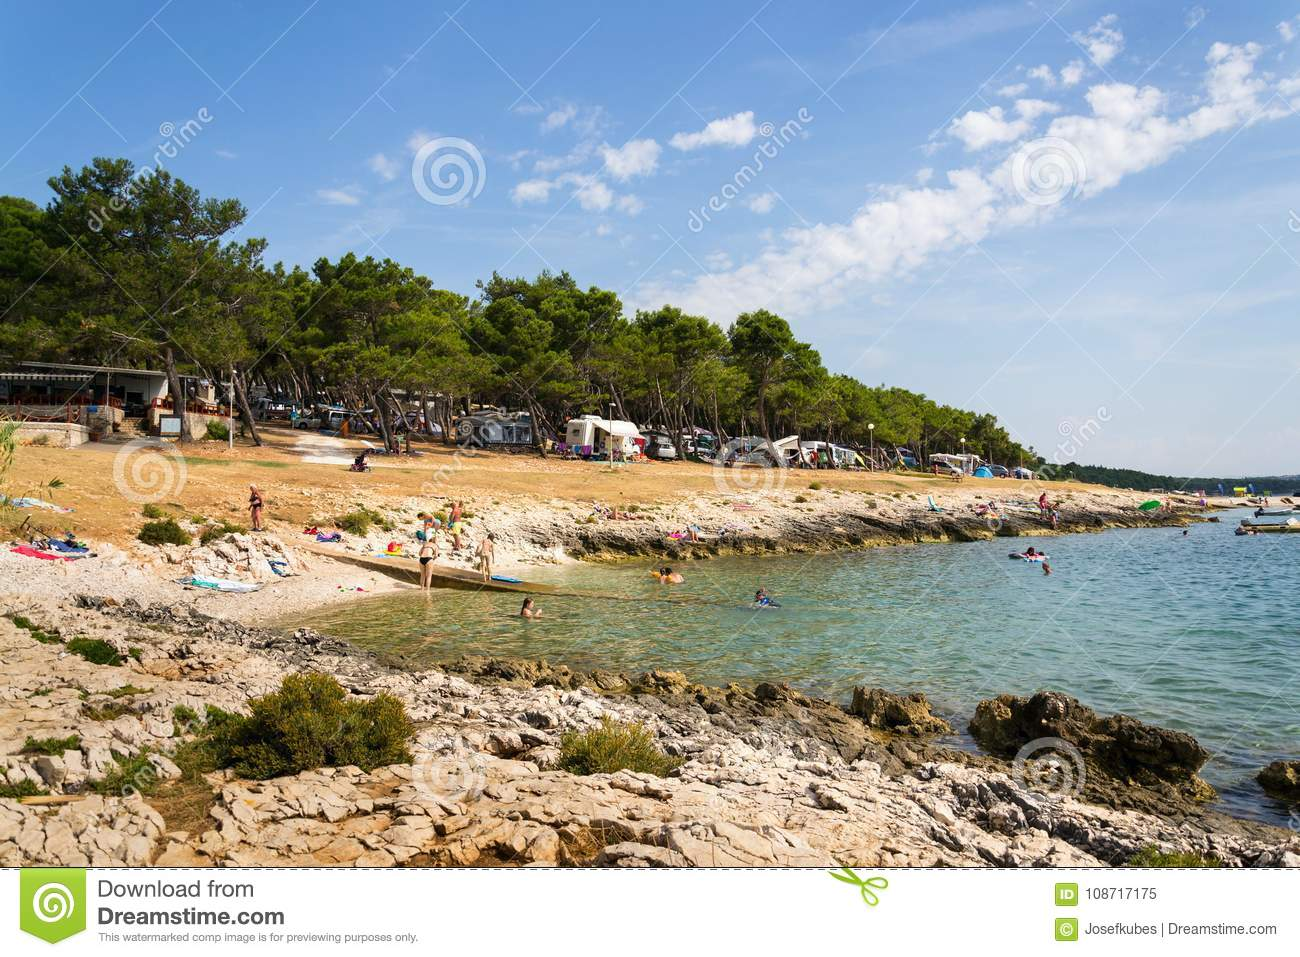 Tourists, caravans and boats on Kamenjak peninsula by the Adriatic sea in Premantura, Croatia.